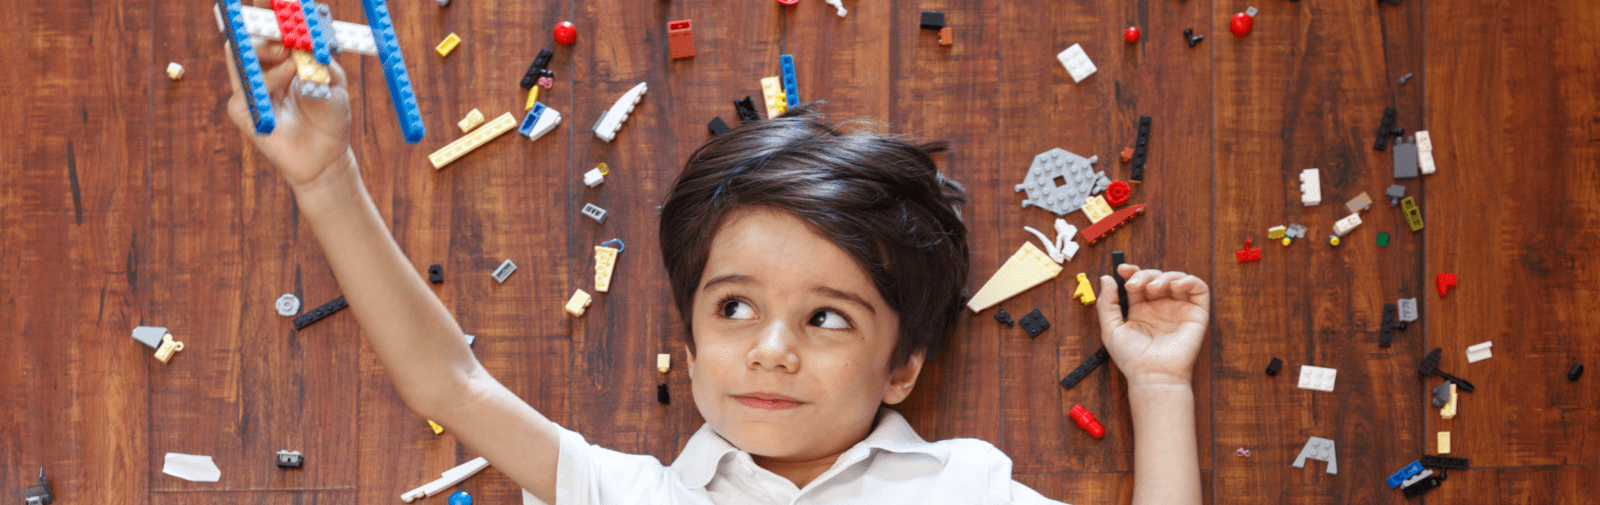 Child in the centre playing with lego.